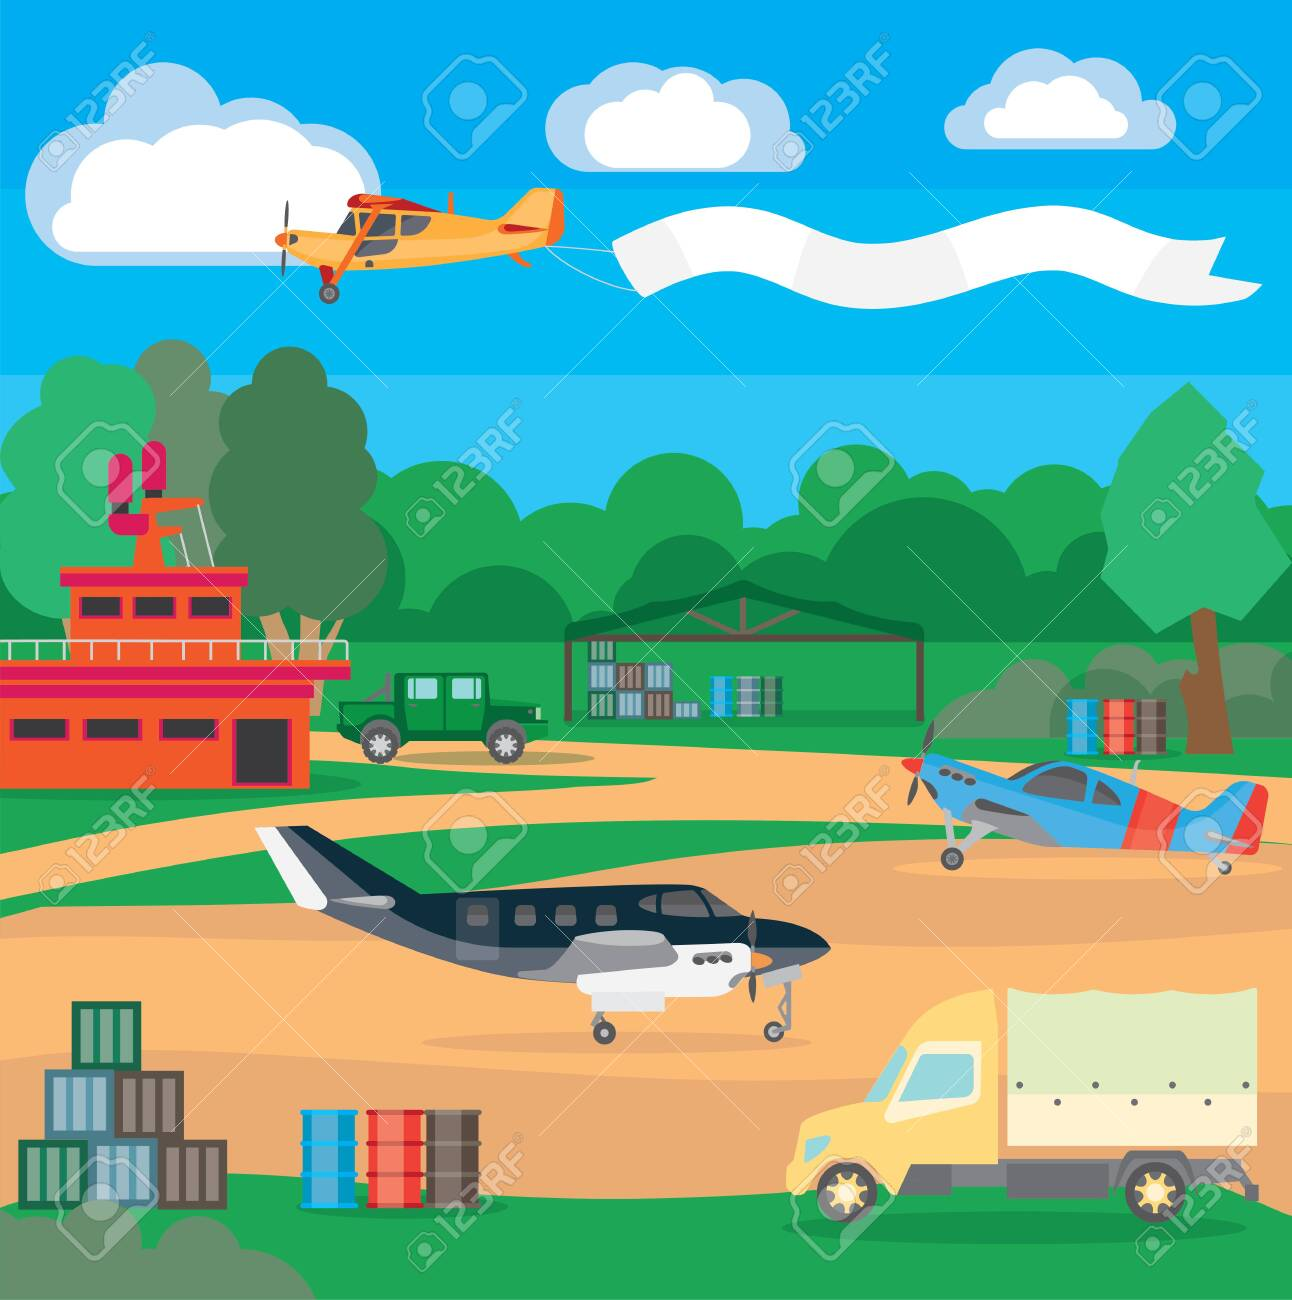 Country airport. Illustration of suburban airfield with equipment and service system, dispatching and locator system. Illustration for travel and recreation. - 130395642